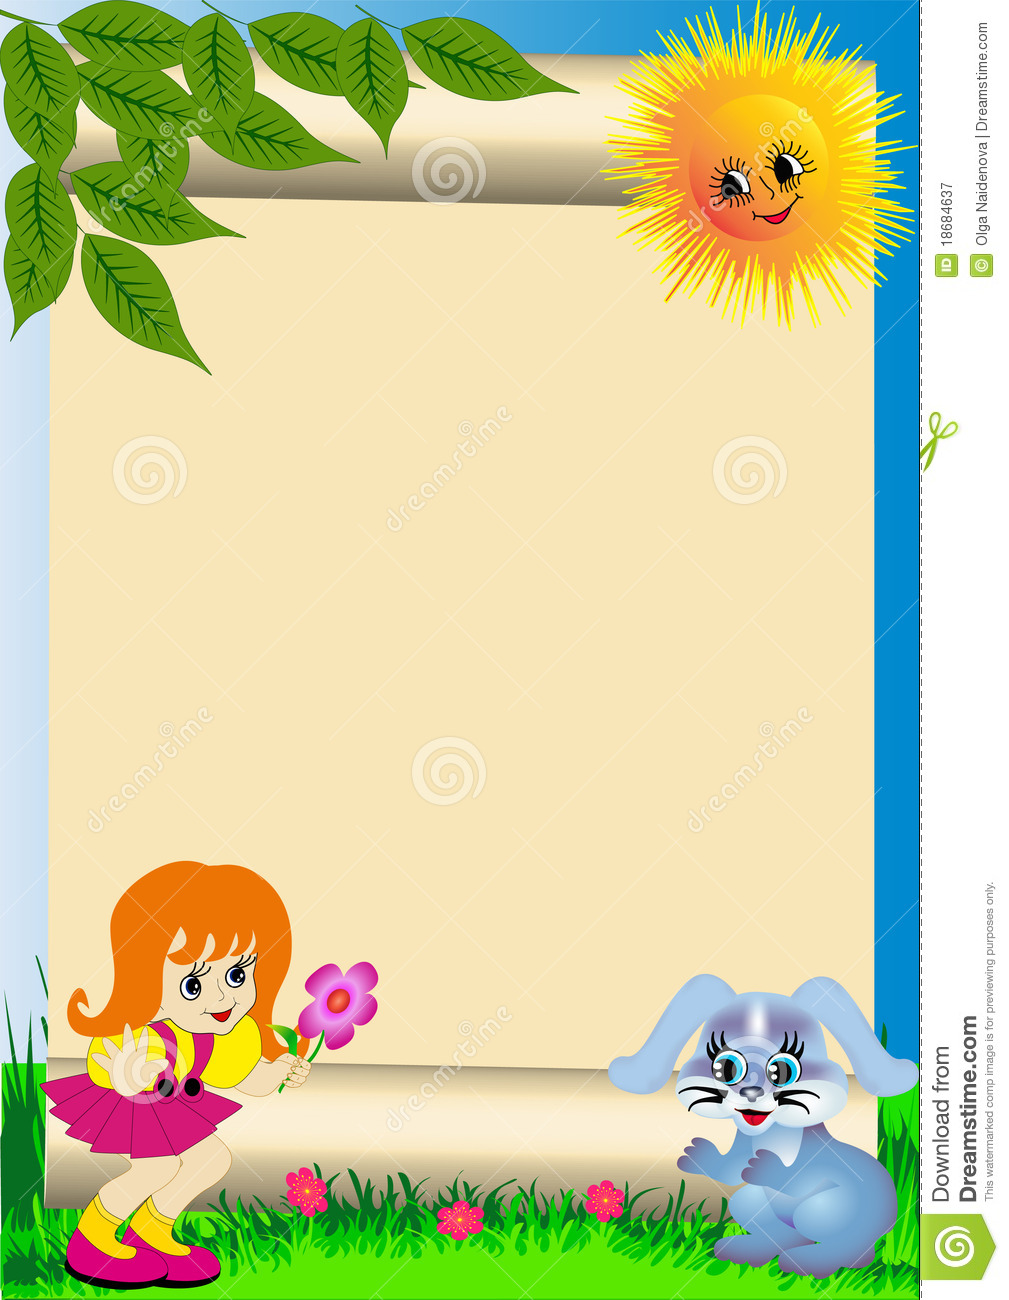 Background child with flower